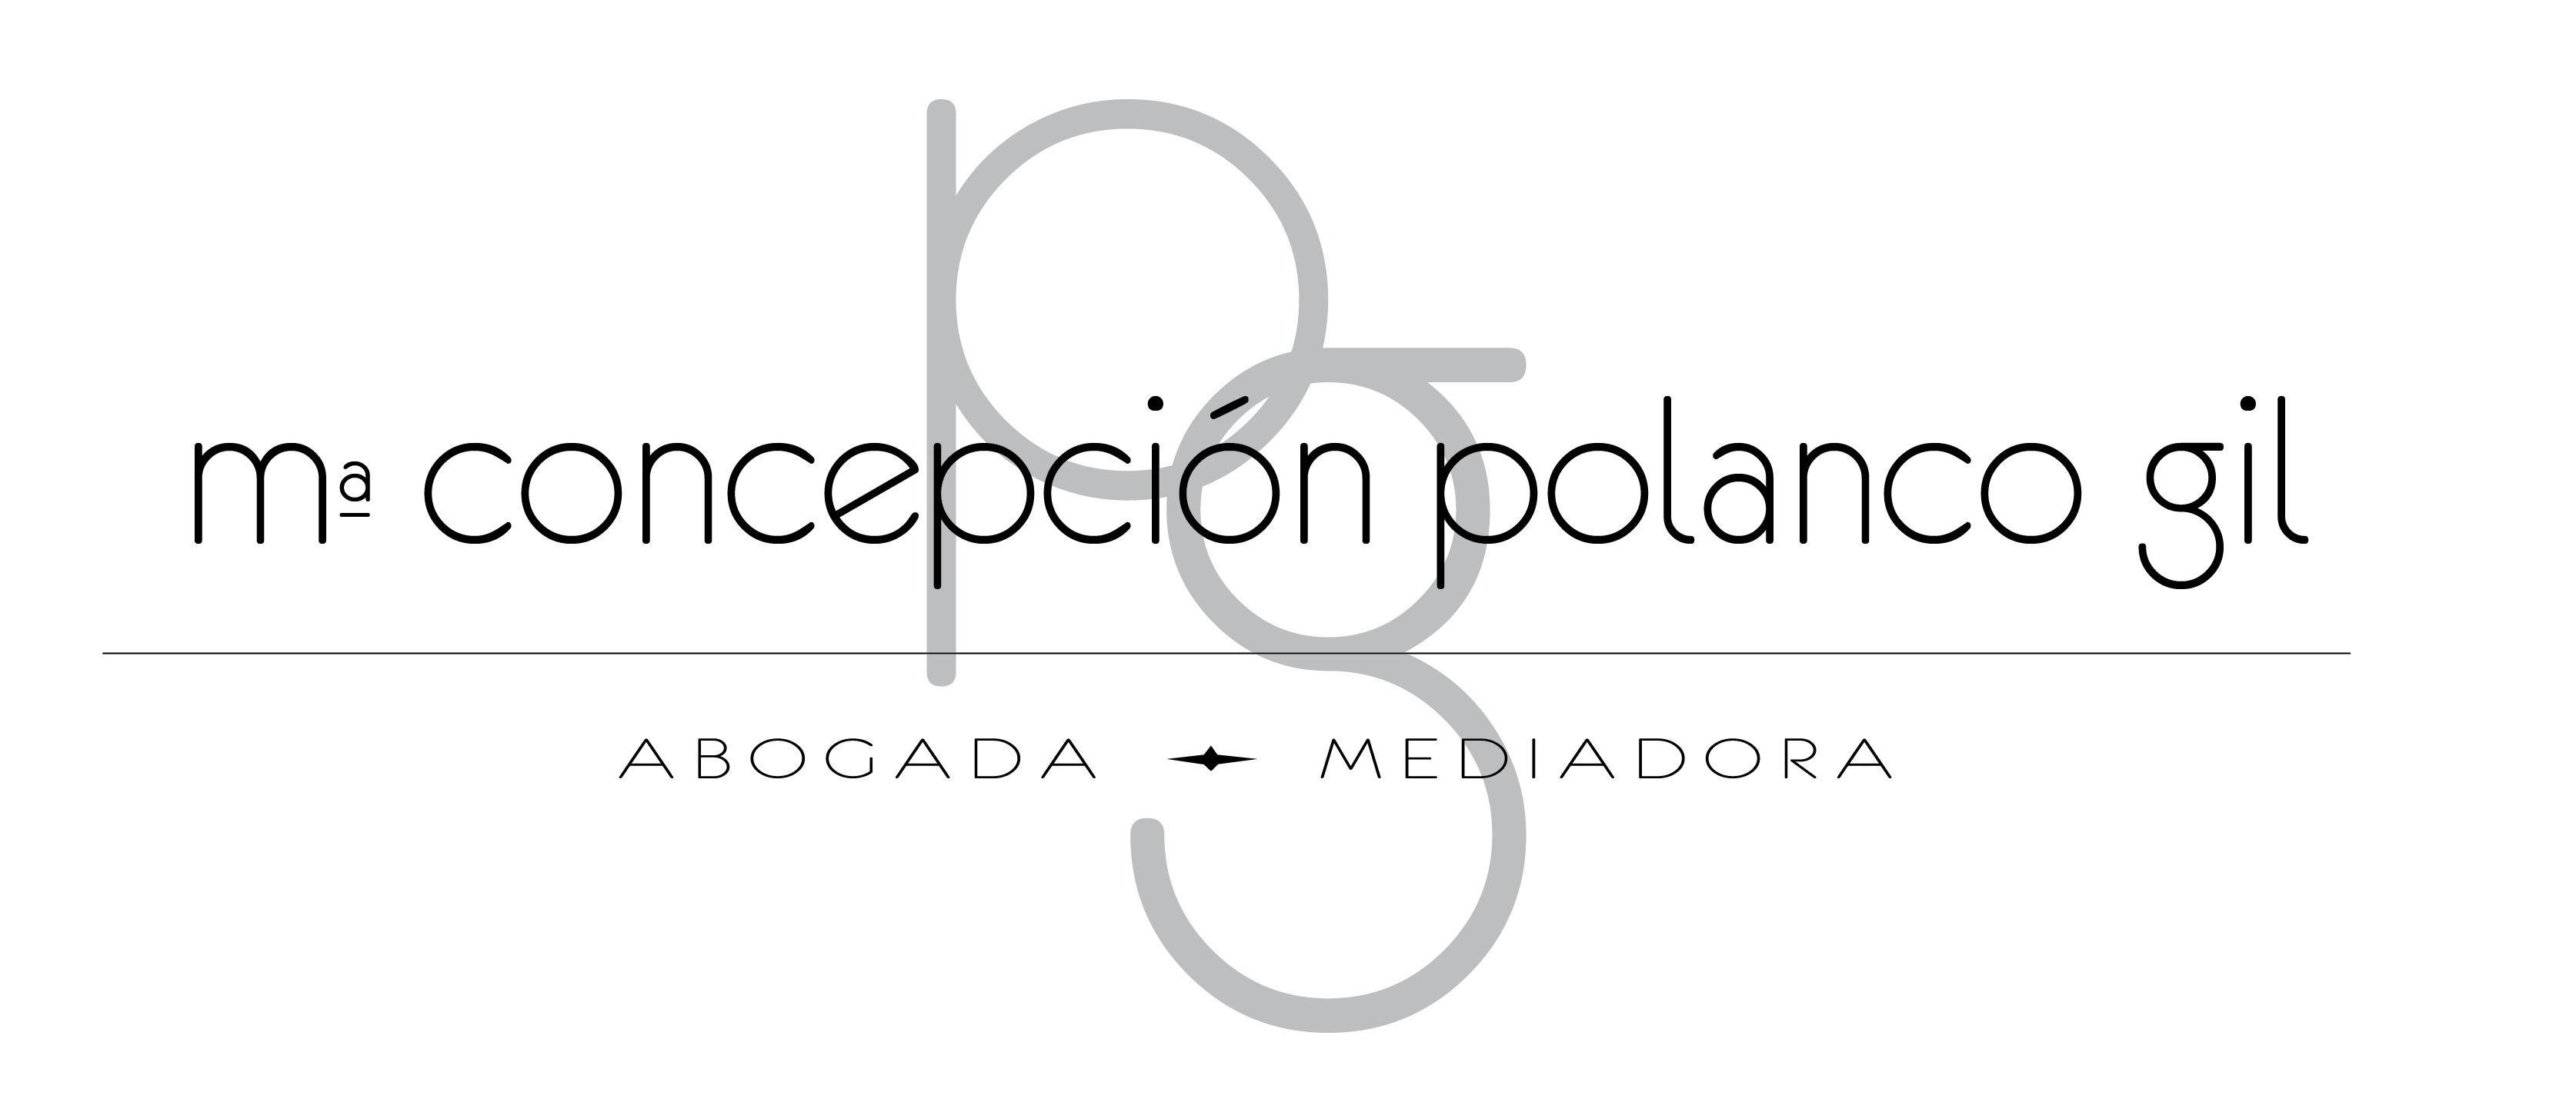 Mª Concepcion Polanco Gil